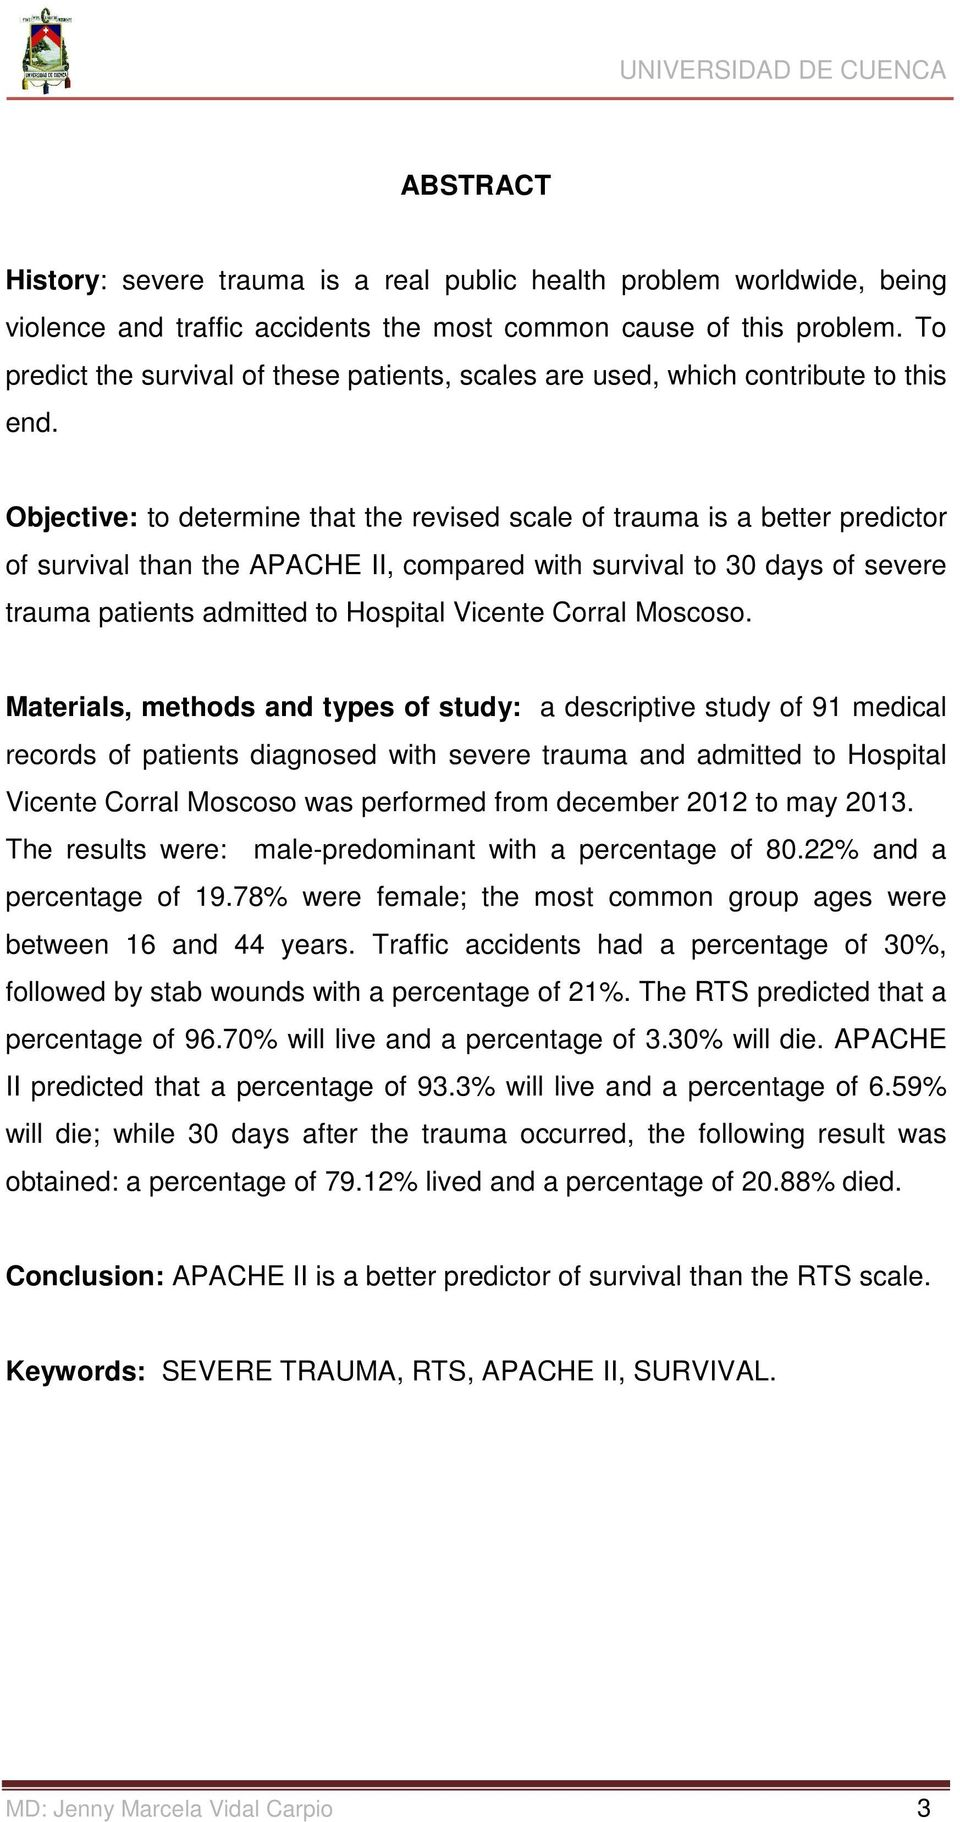 Objective: to determine that the revised scale of trauma is a better predictor of survival than the APACHE II, compared with survival to 30 days of severe trauma patients admitted to Hospital Vicente